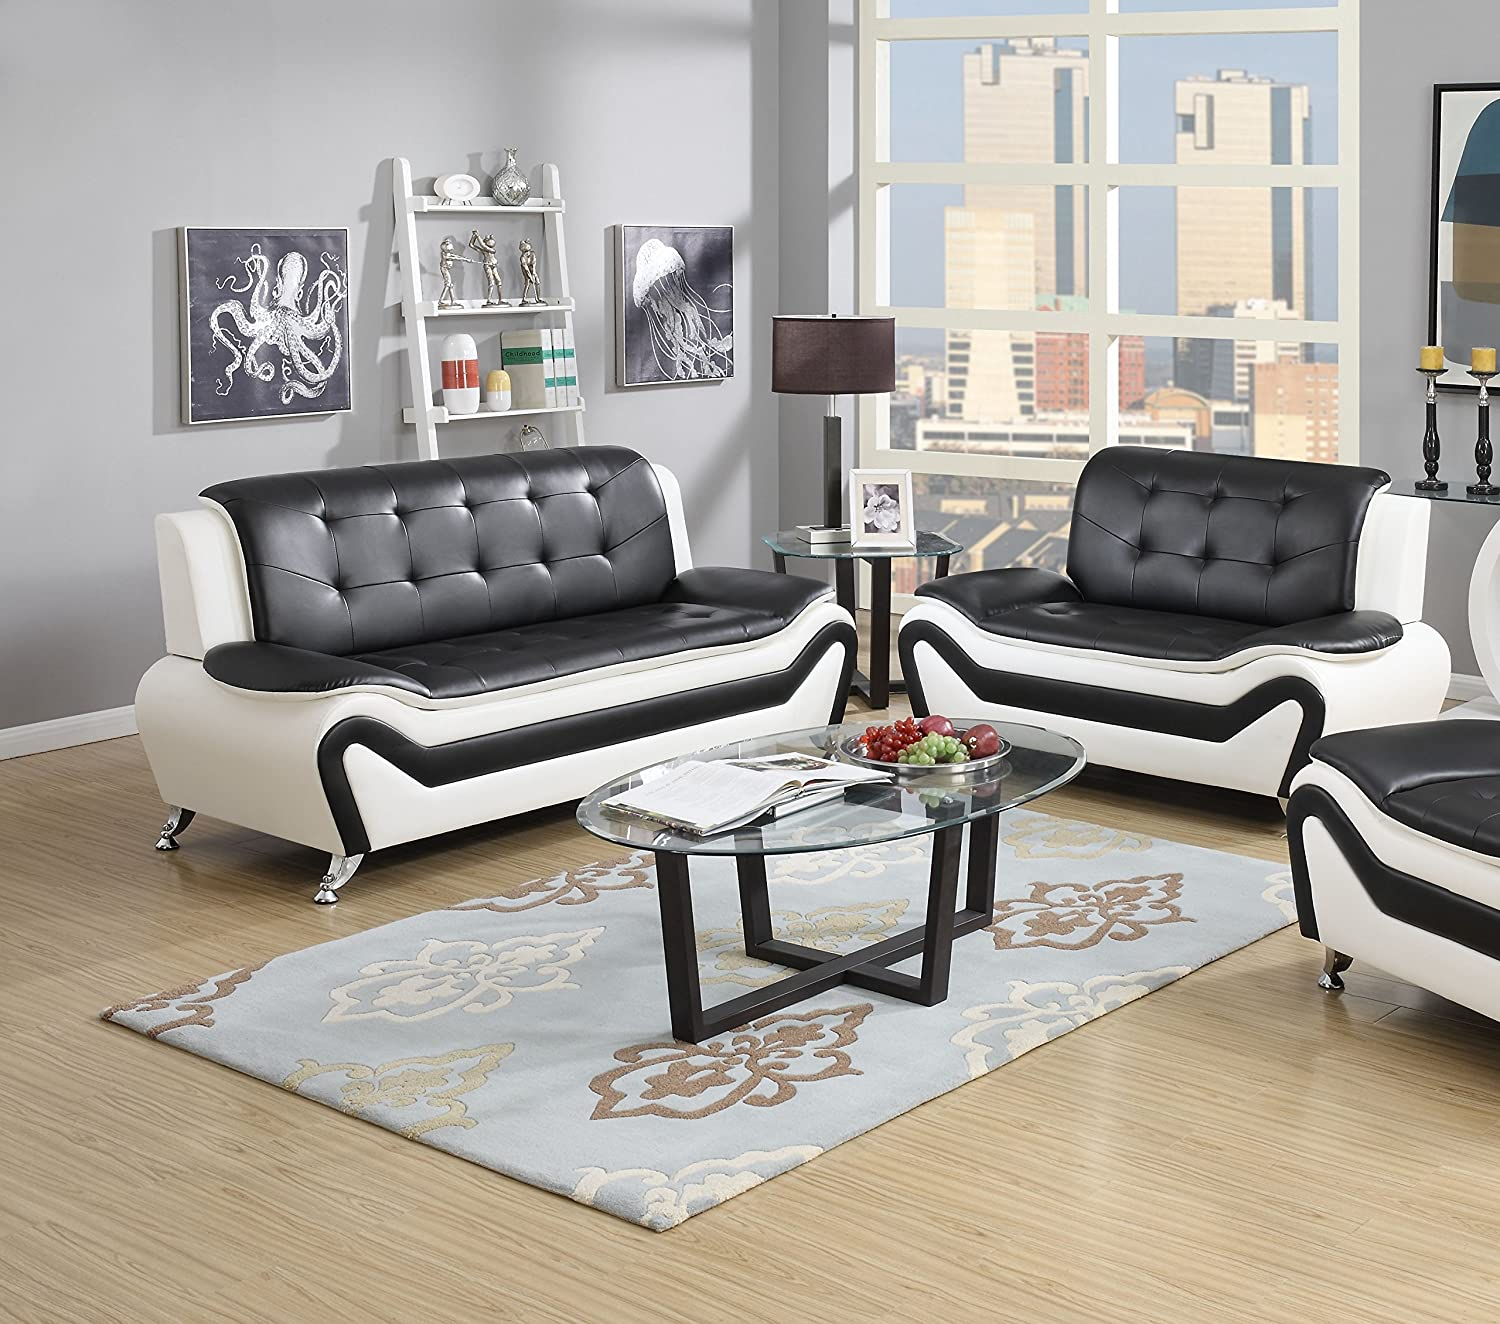 white leather living room set. Amazon com  US Pride Furniture 3 Piece Modern Bonded Leather Sofa Set with Loveseat and Chair White Black Kitchen Dining